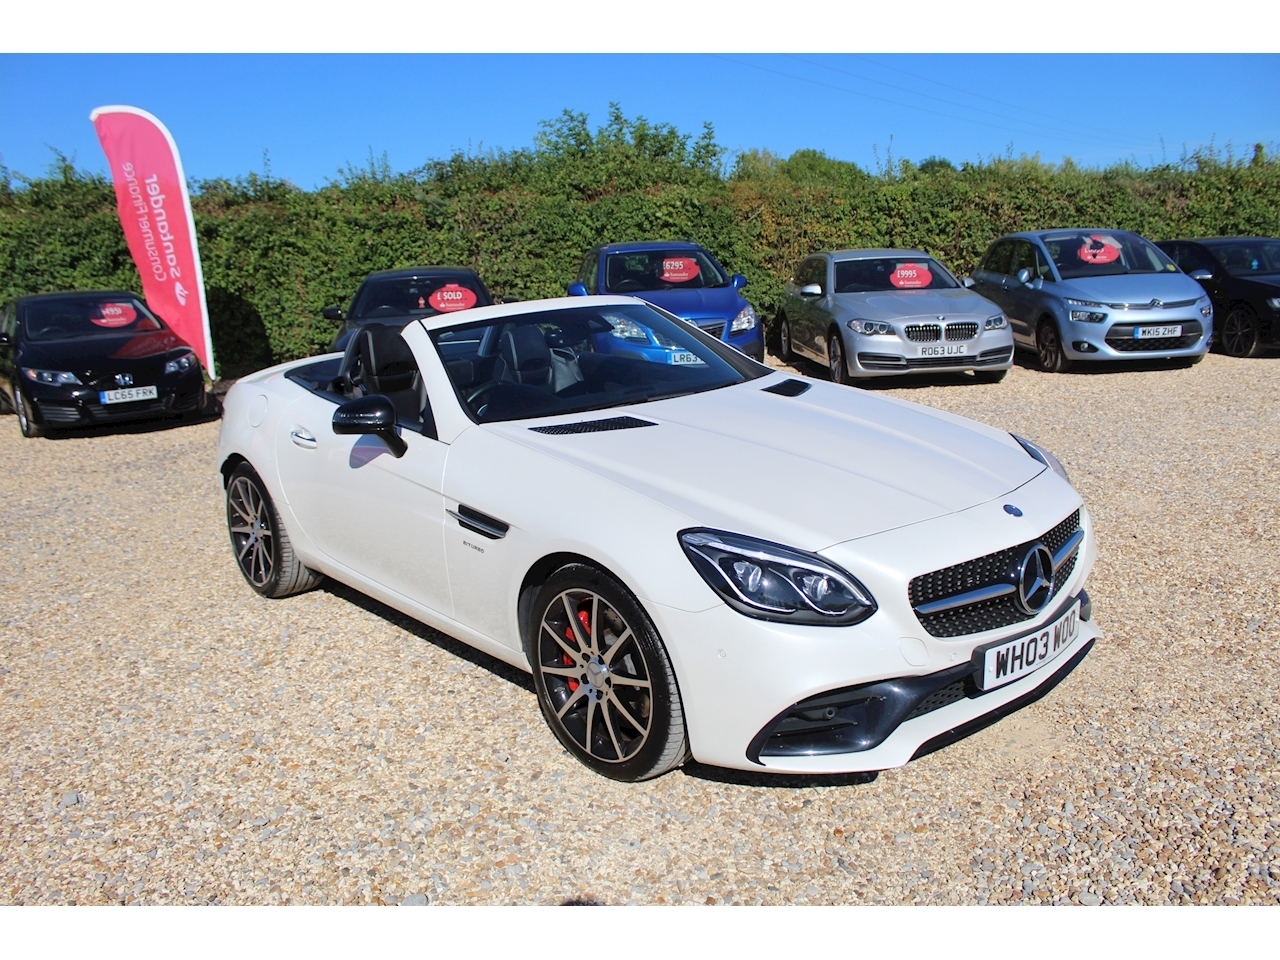 Mercedes-Benz SLC AMG Convertible 3.0 G-Tronic Petrol